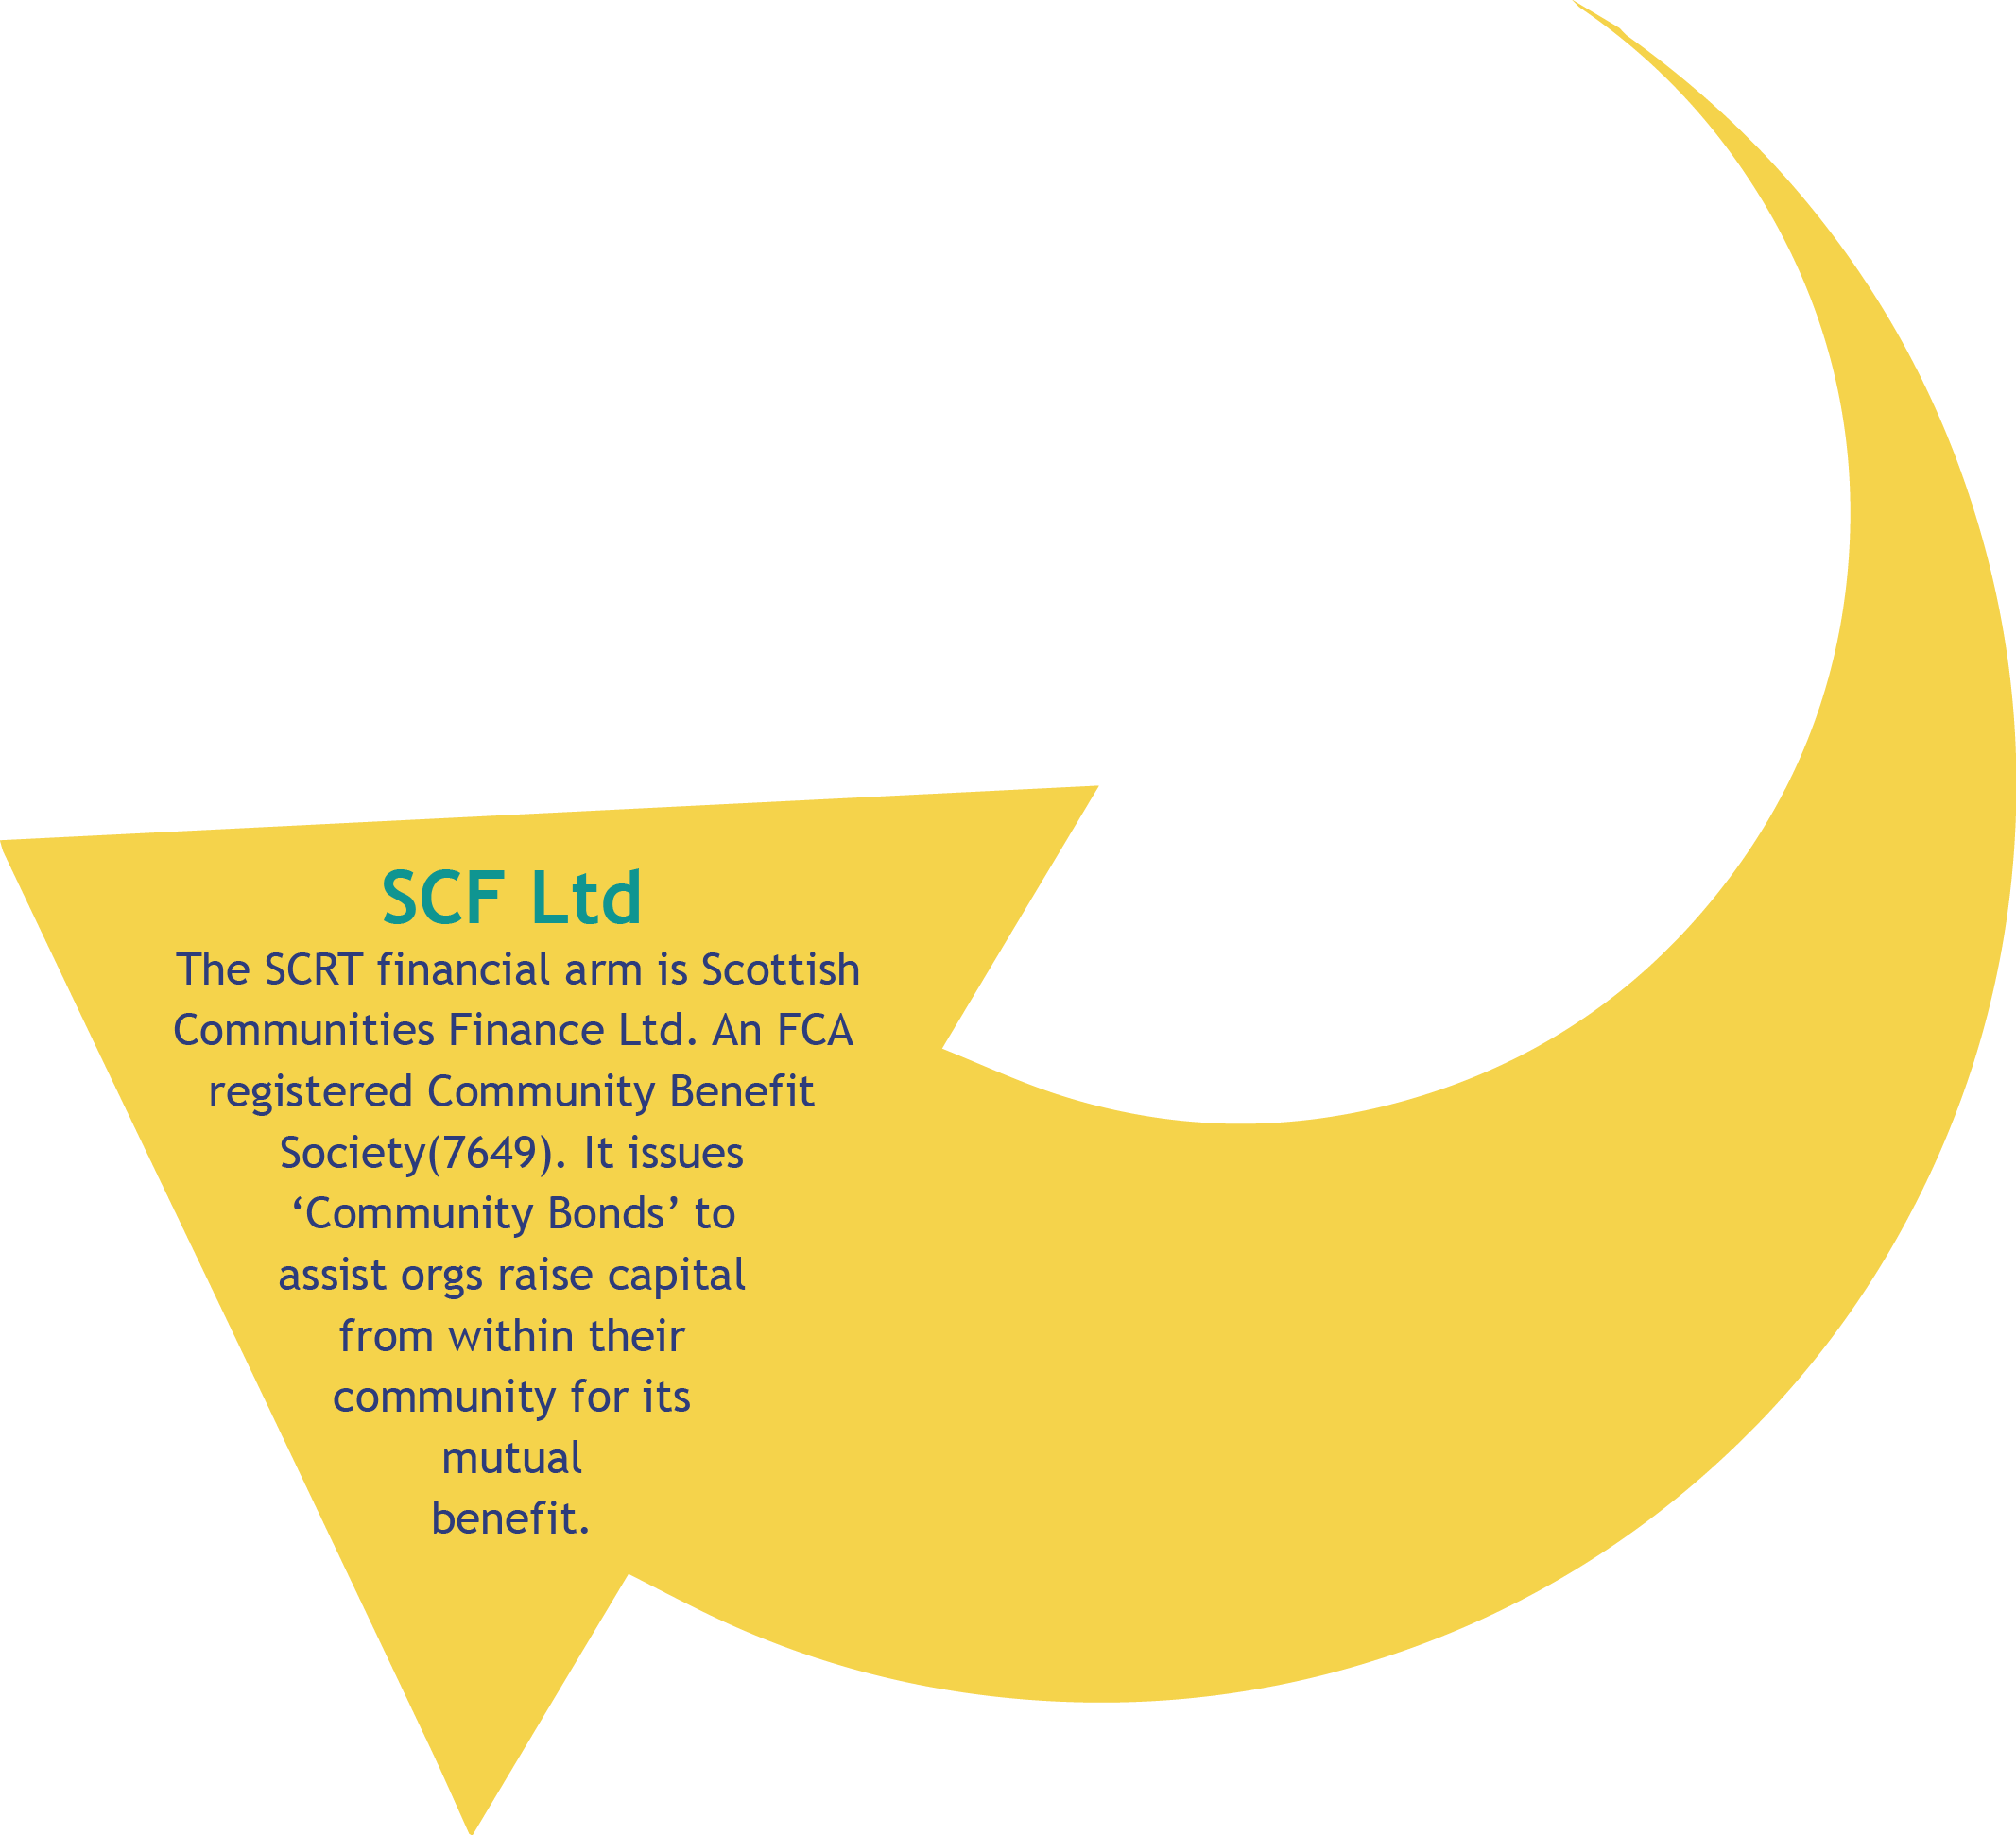 SCF Ltd arrow